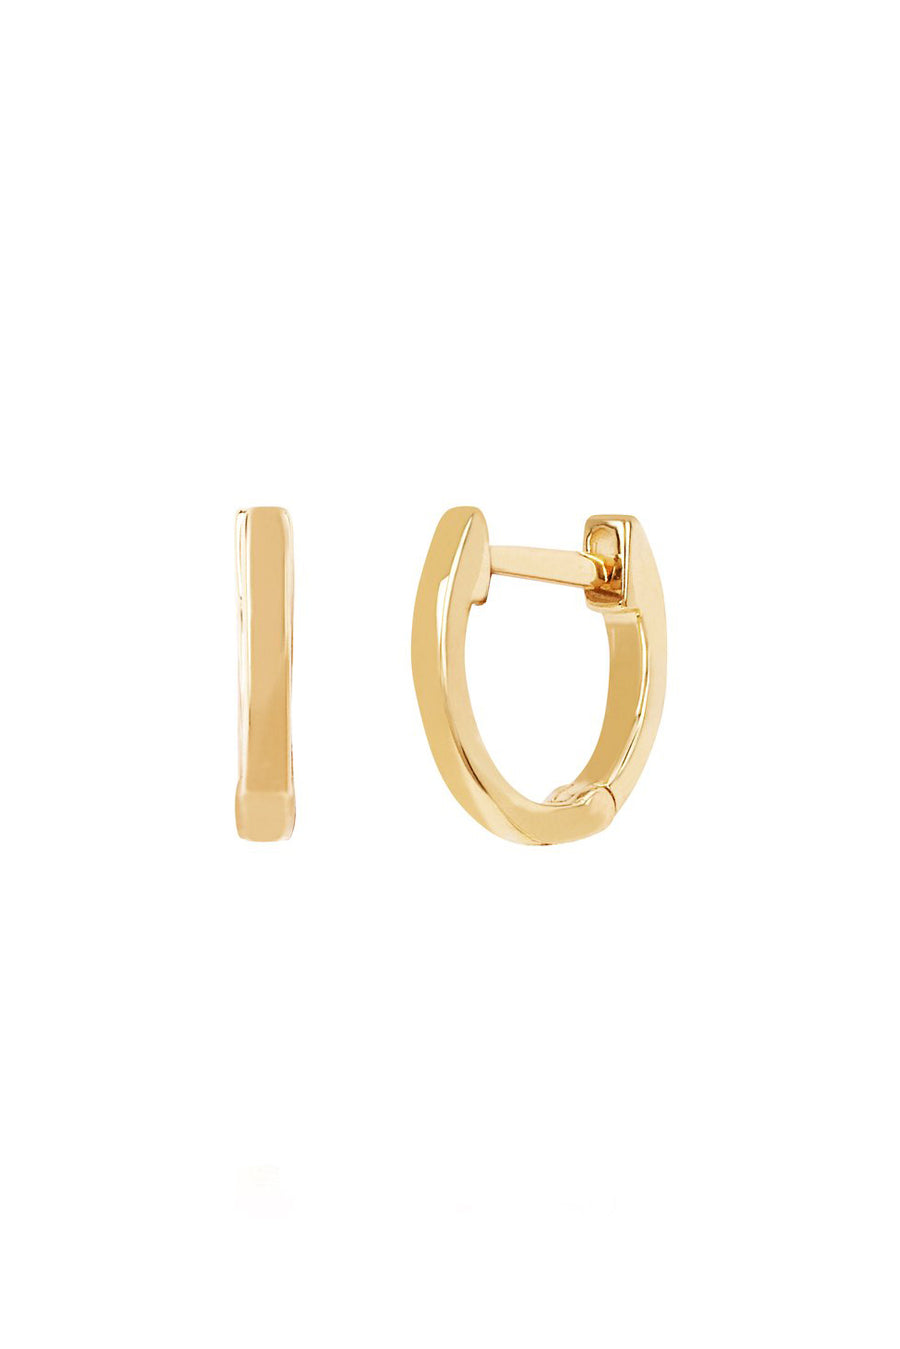 Gold Mini Huggie Earring - Yellow Gold - Pavilion